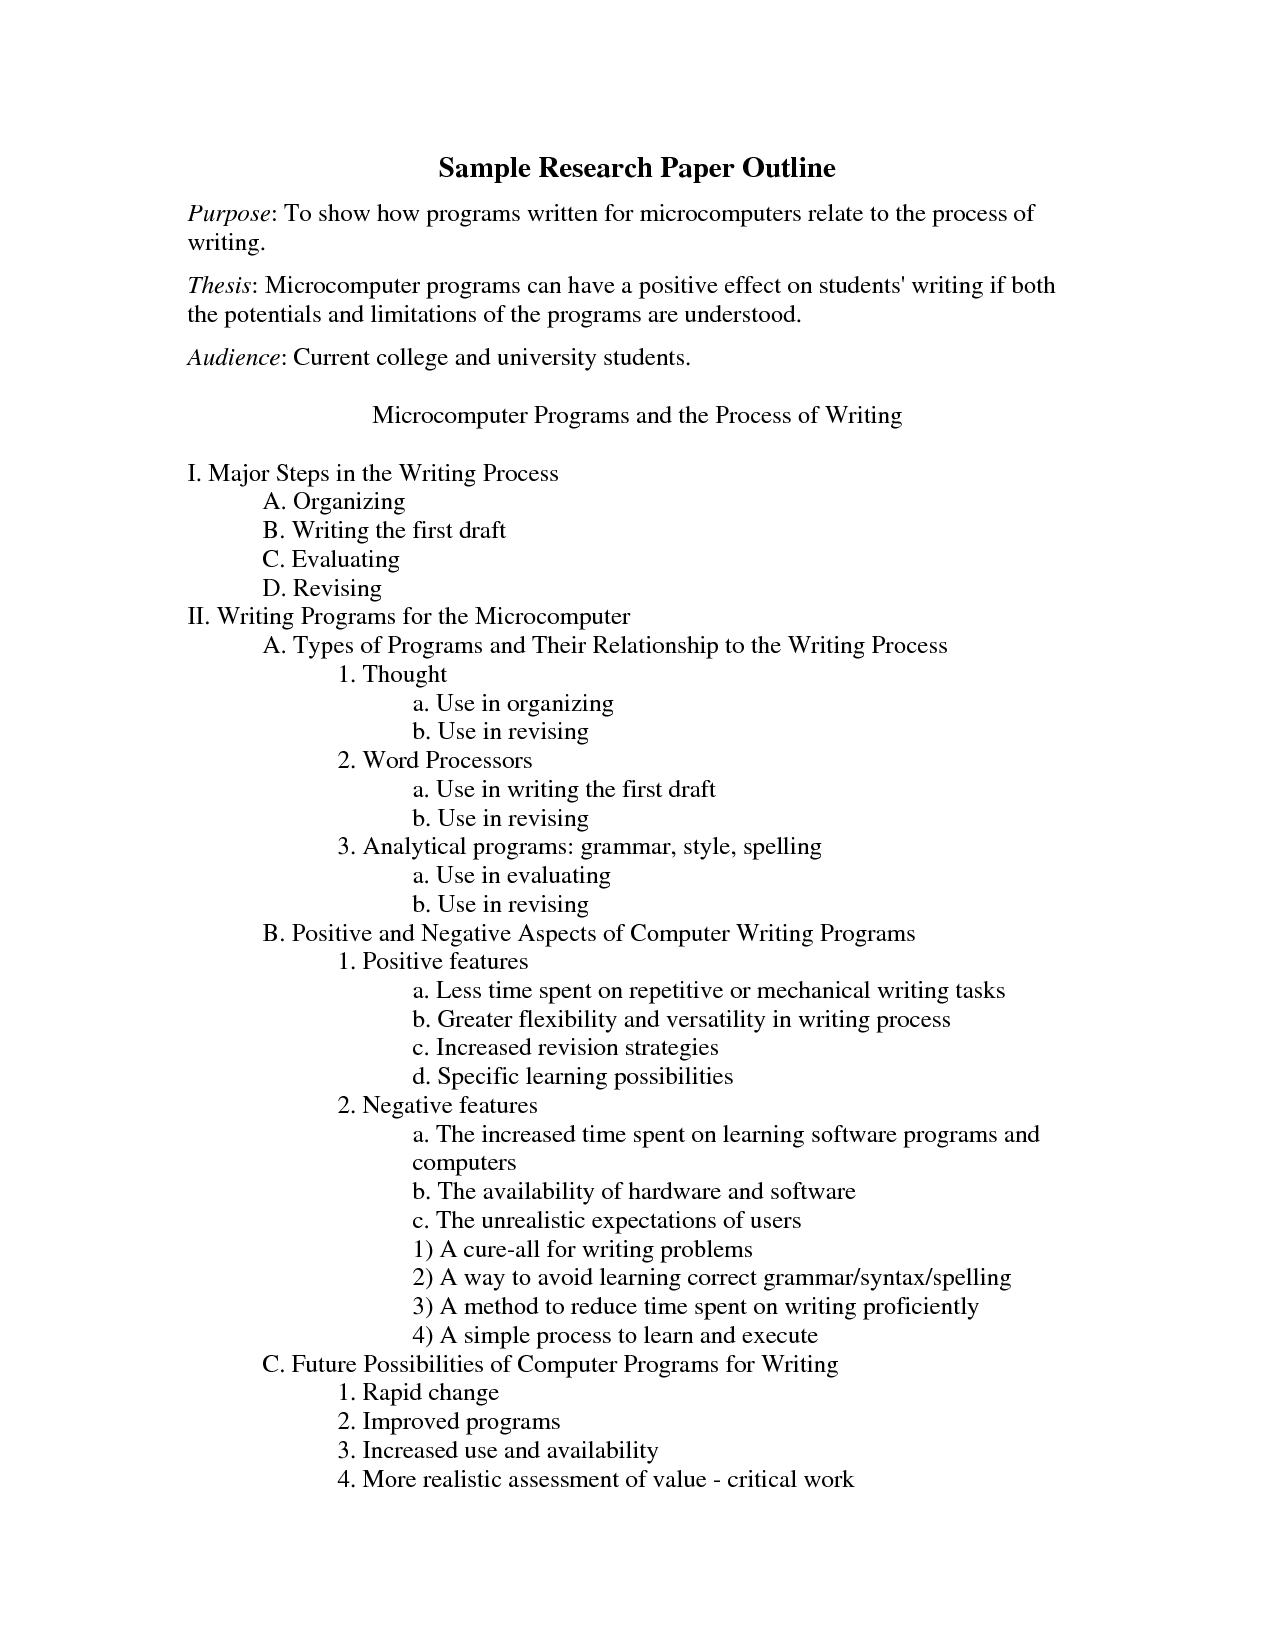 003 College Research Paper Outline Examples 477364mat Incredible Format For Mla Sample Sentence Example Thesis Statement Full